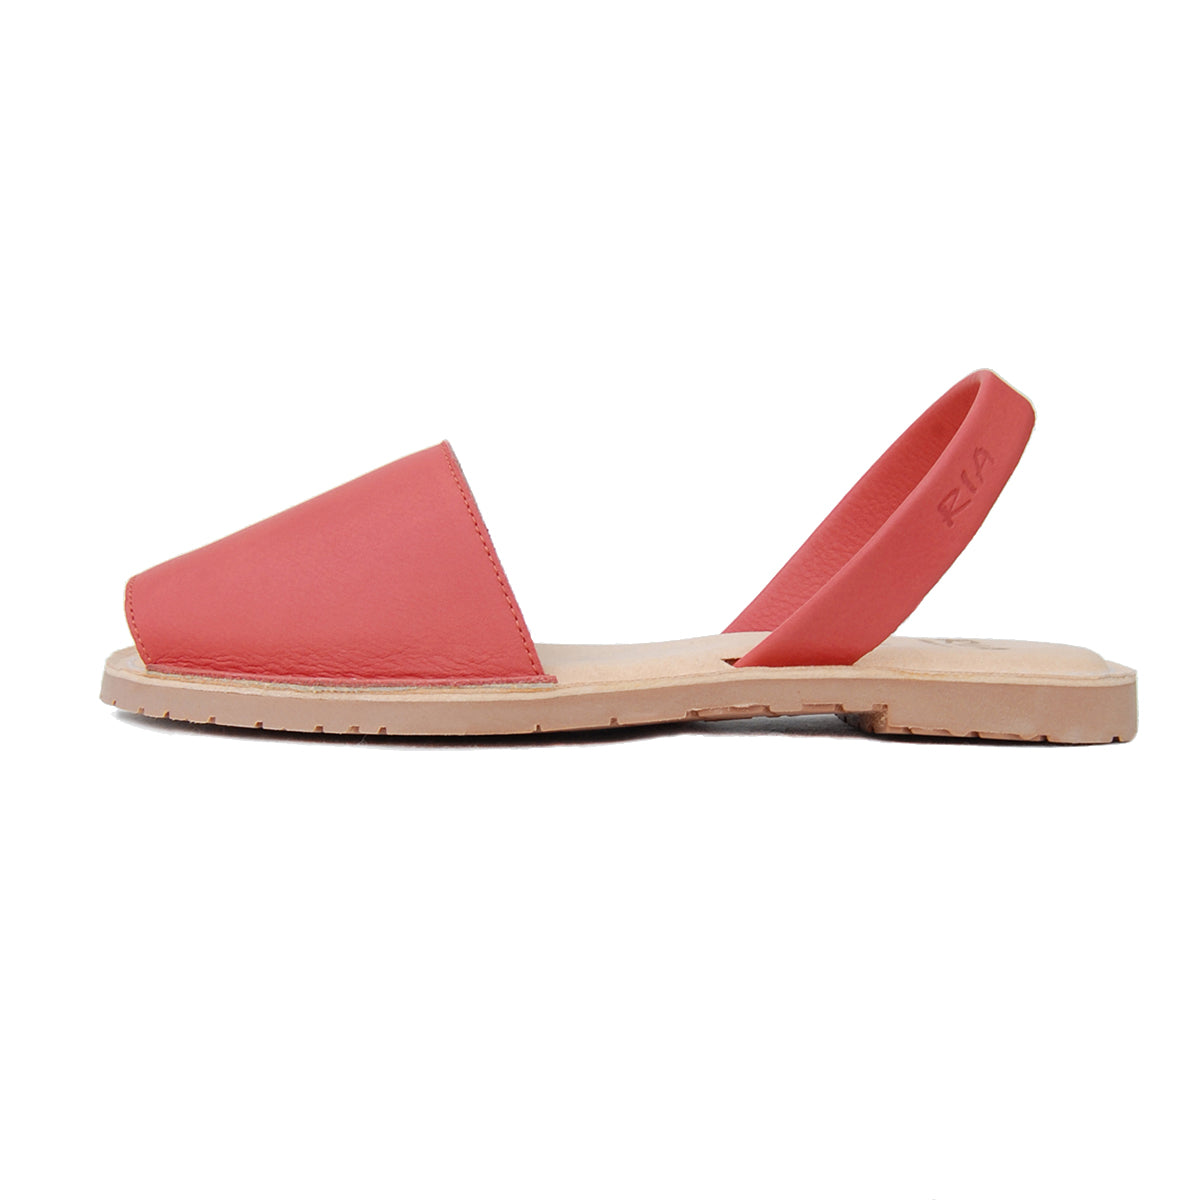 Avarcas Cushioned Sandals Avila in Coral